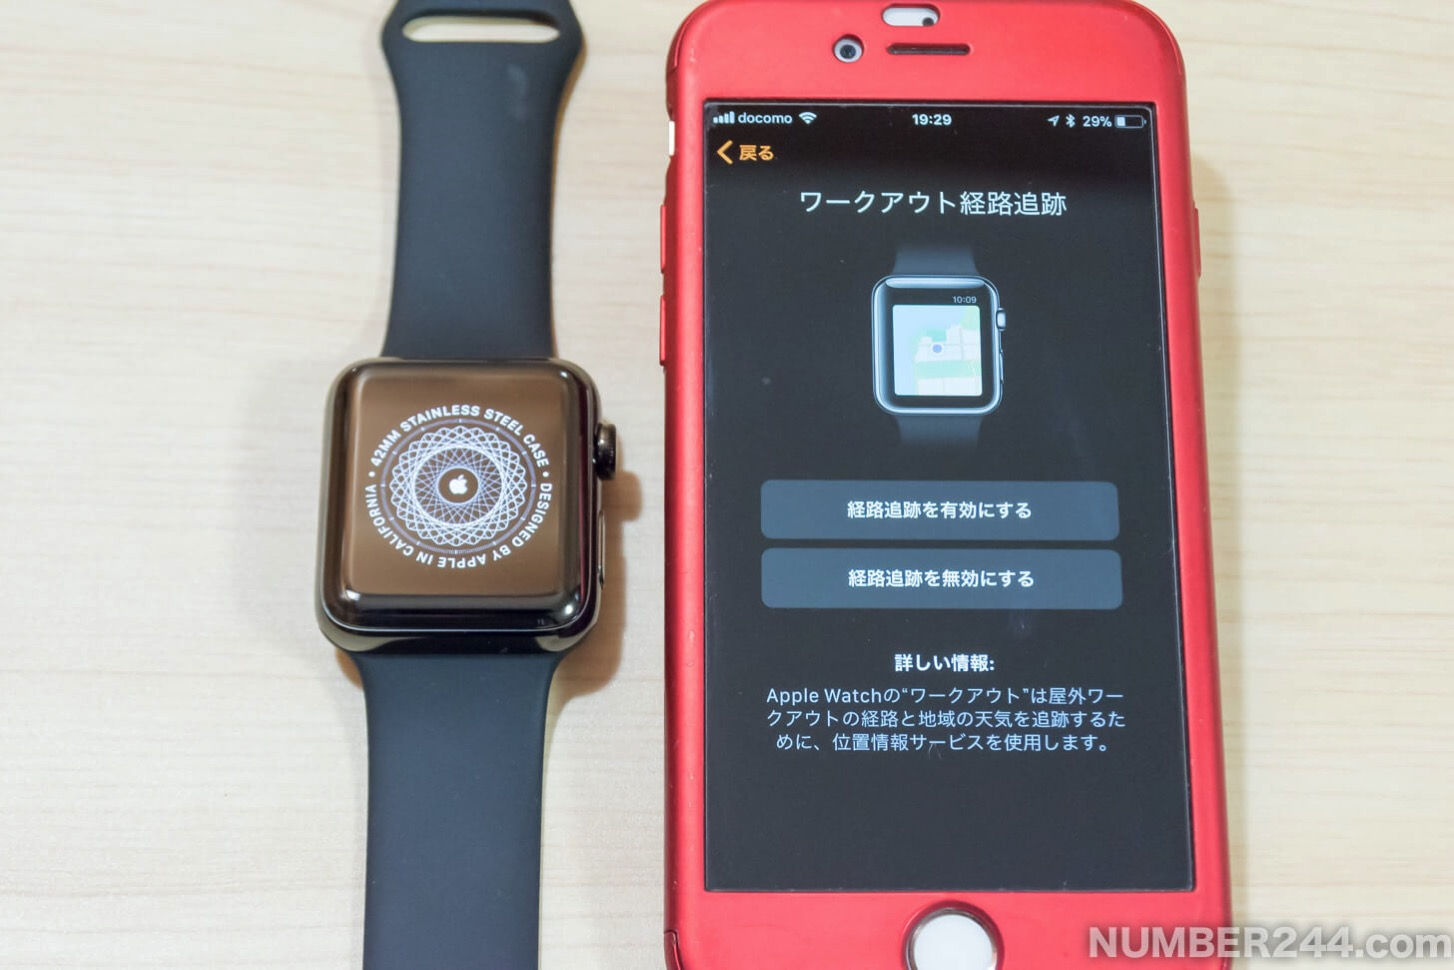 Initial setting of Apple Watch 9